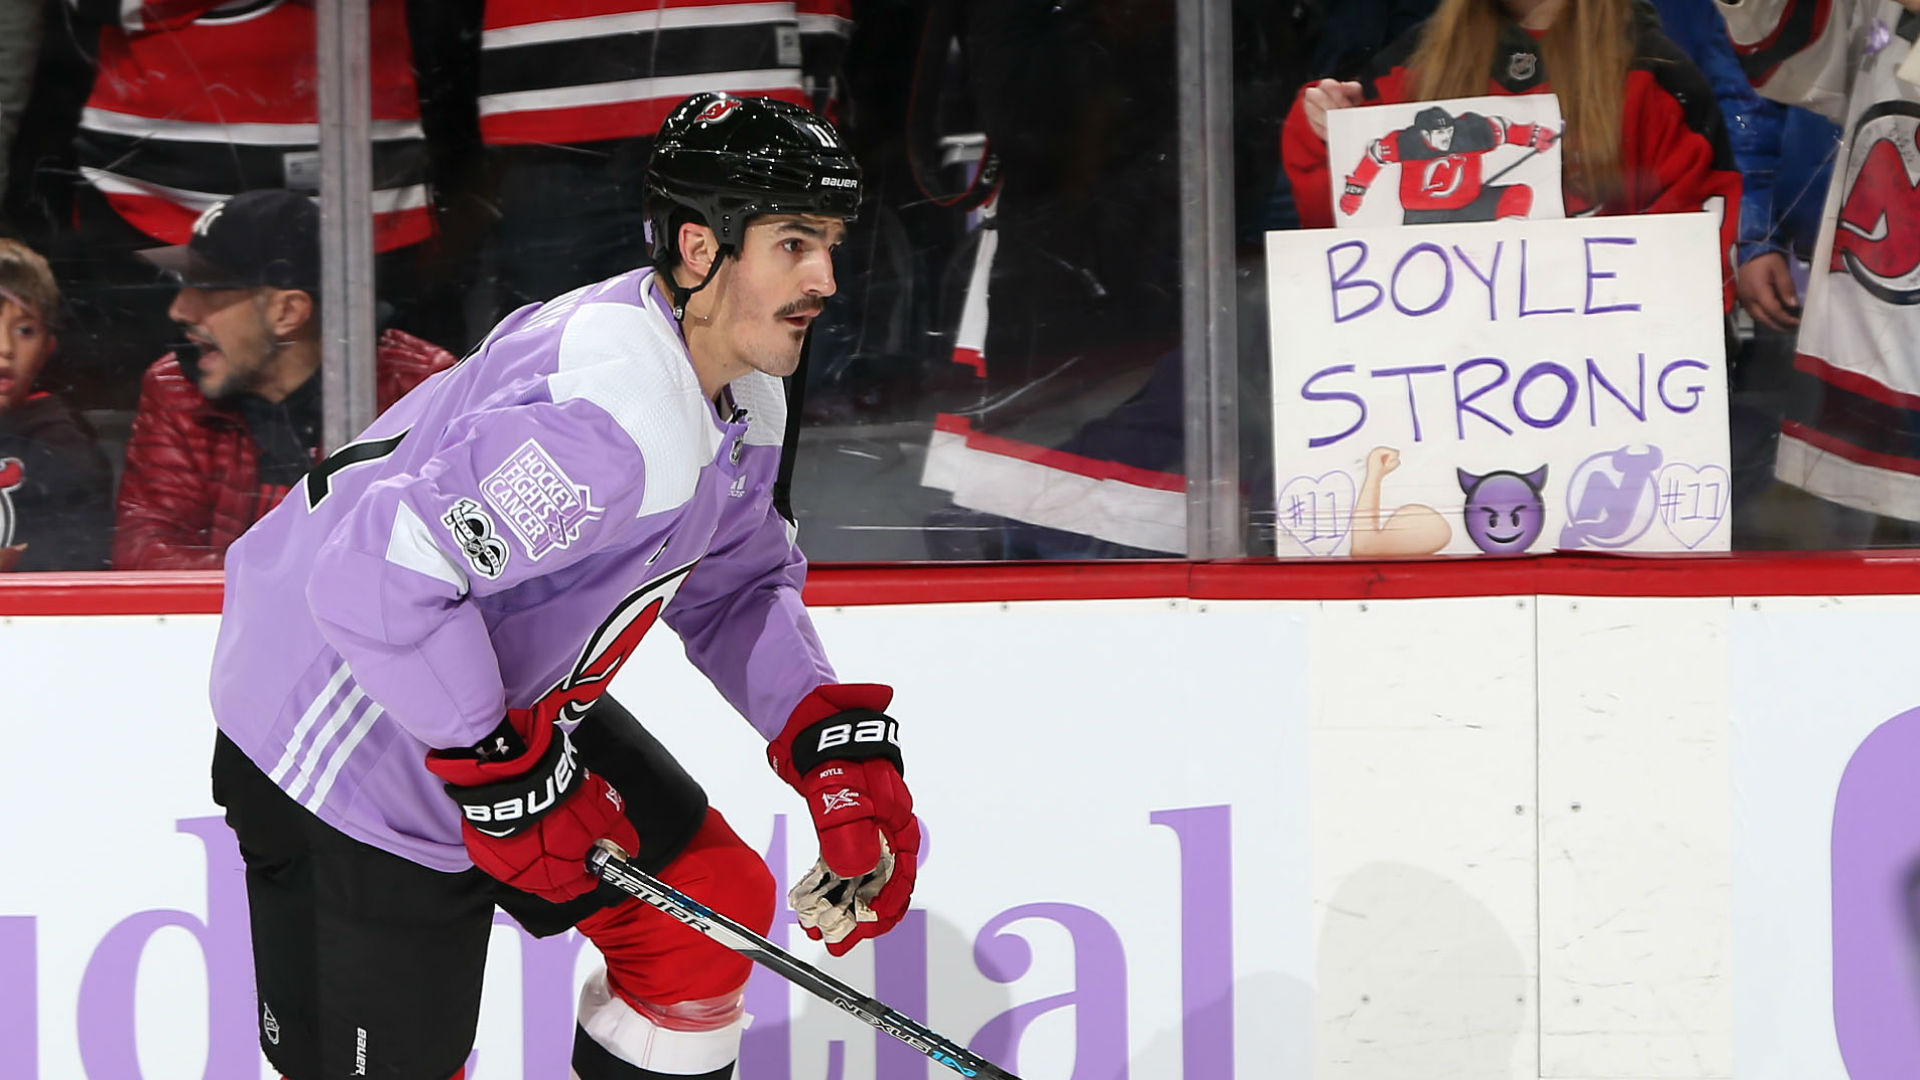 8c1c8b2024e Brian Boyle and his story are what make sports great | Sporting News Canada